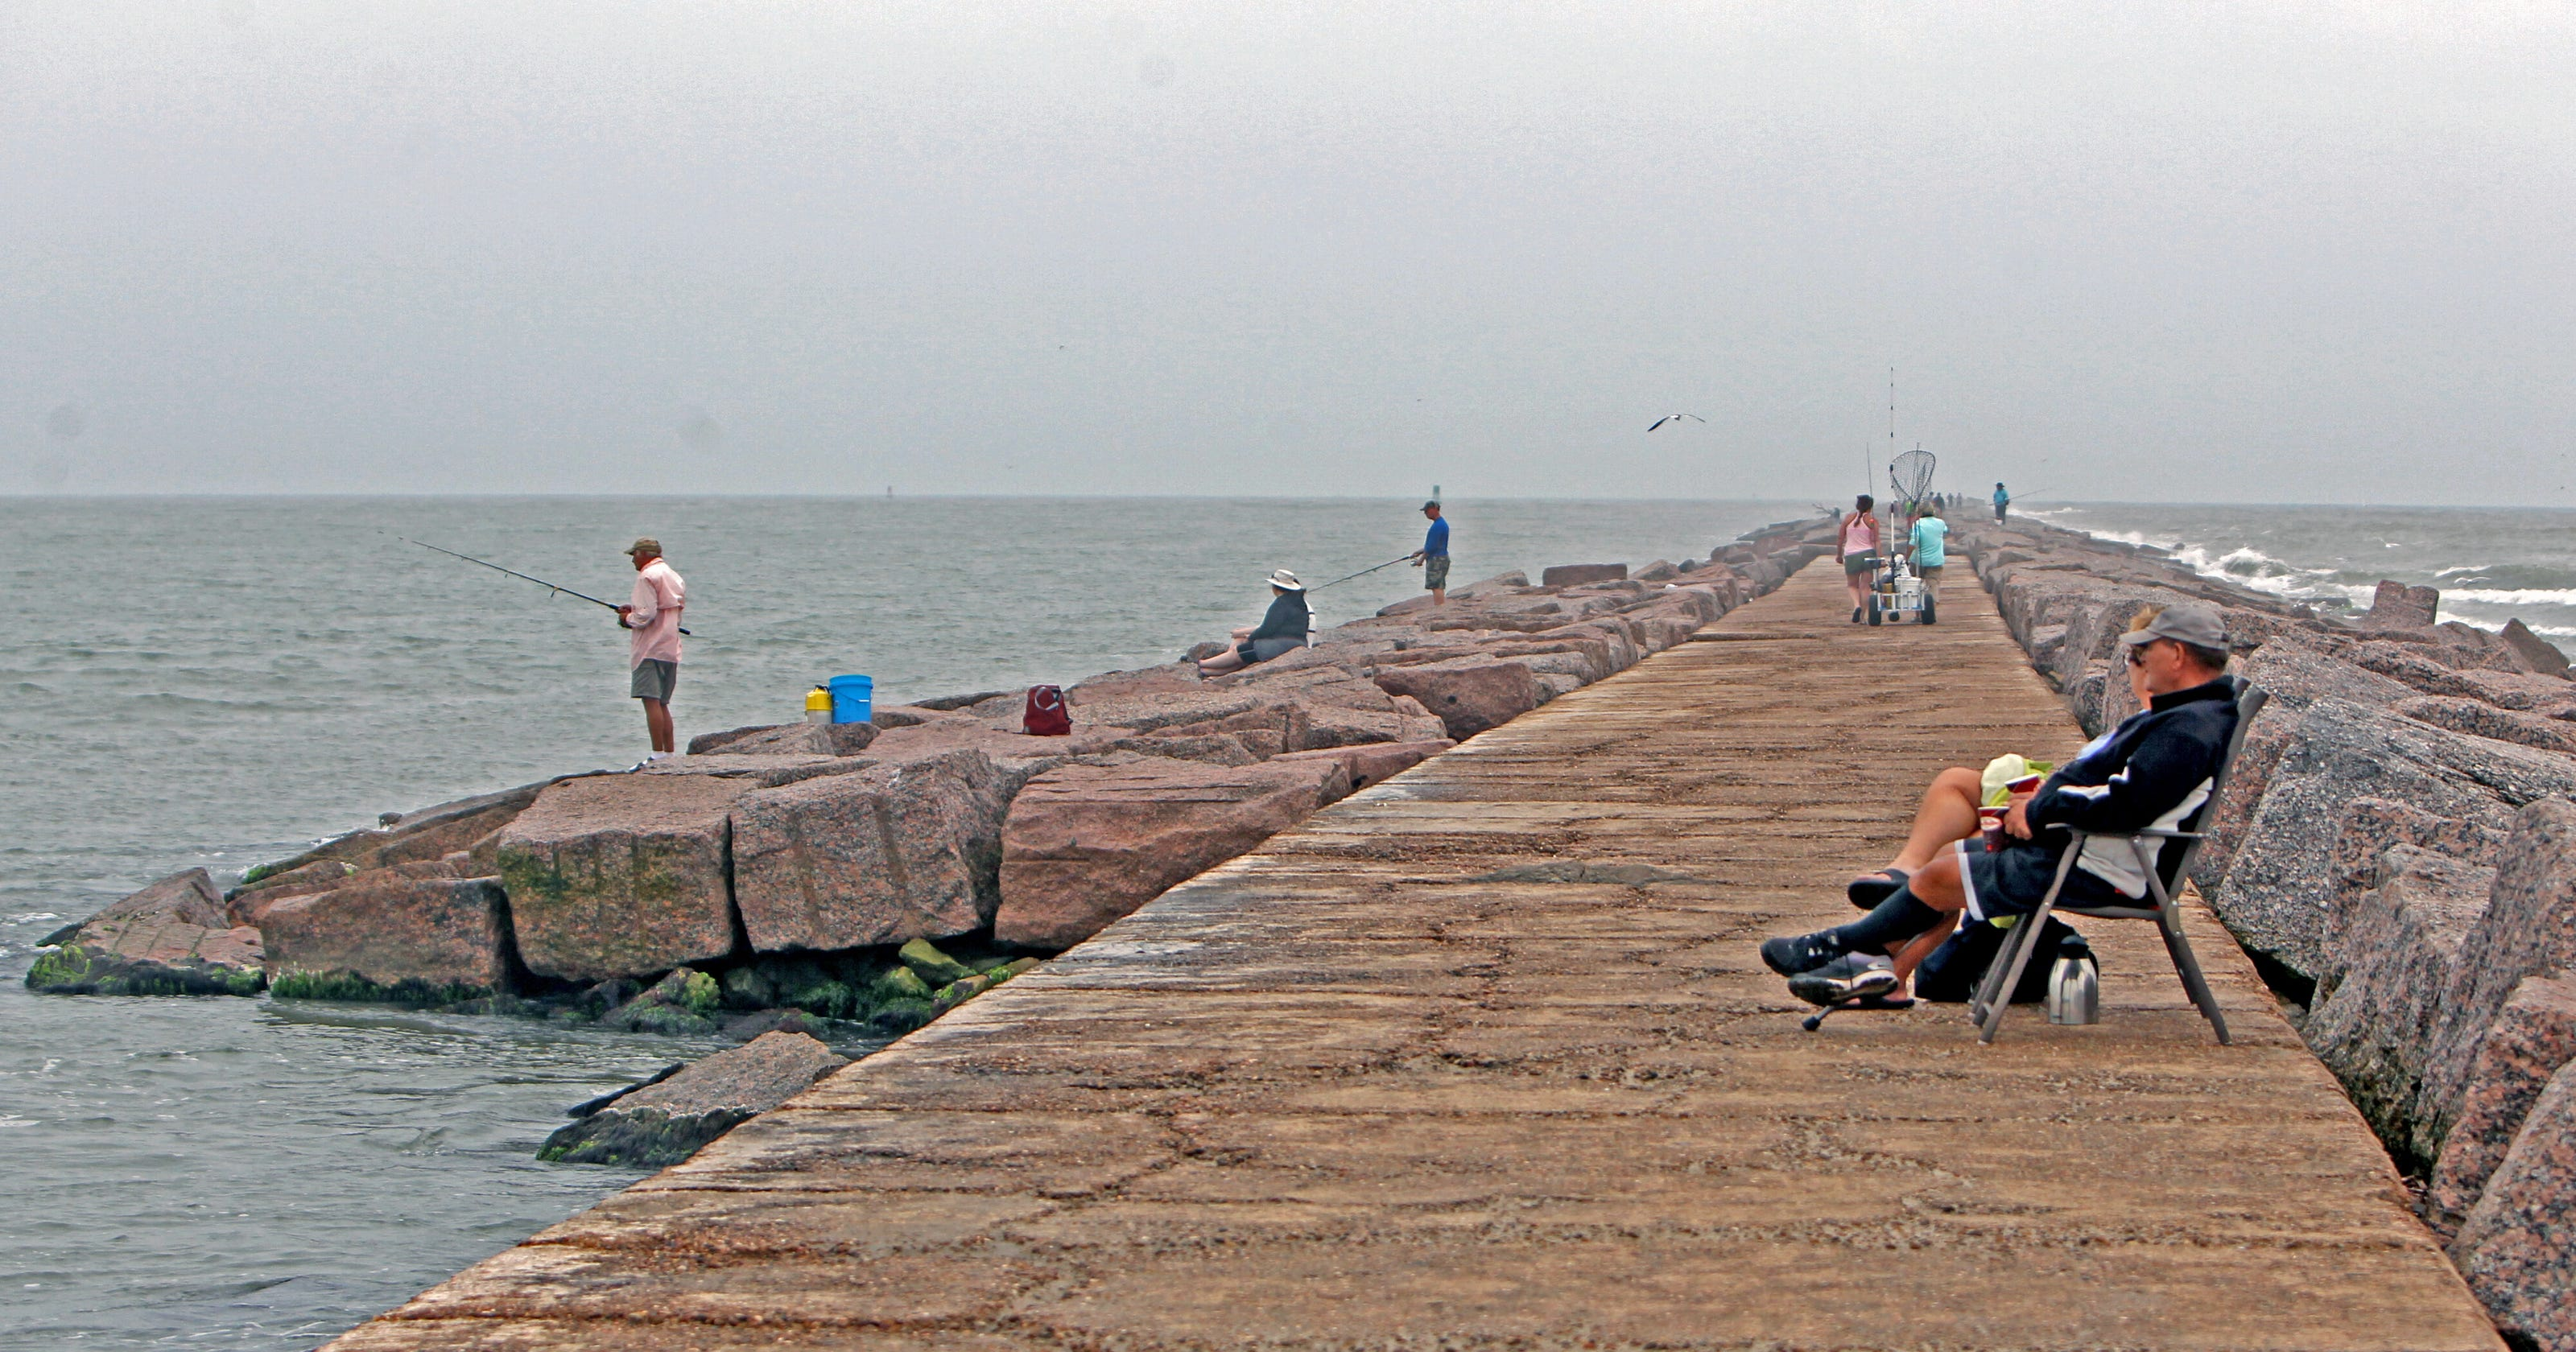 Top Spots For Pier Jetty Fishing From Corpus Christi To Rockport